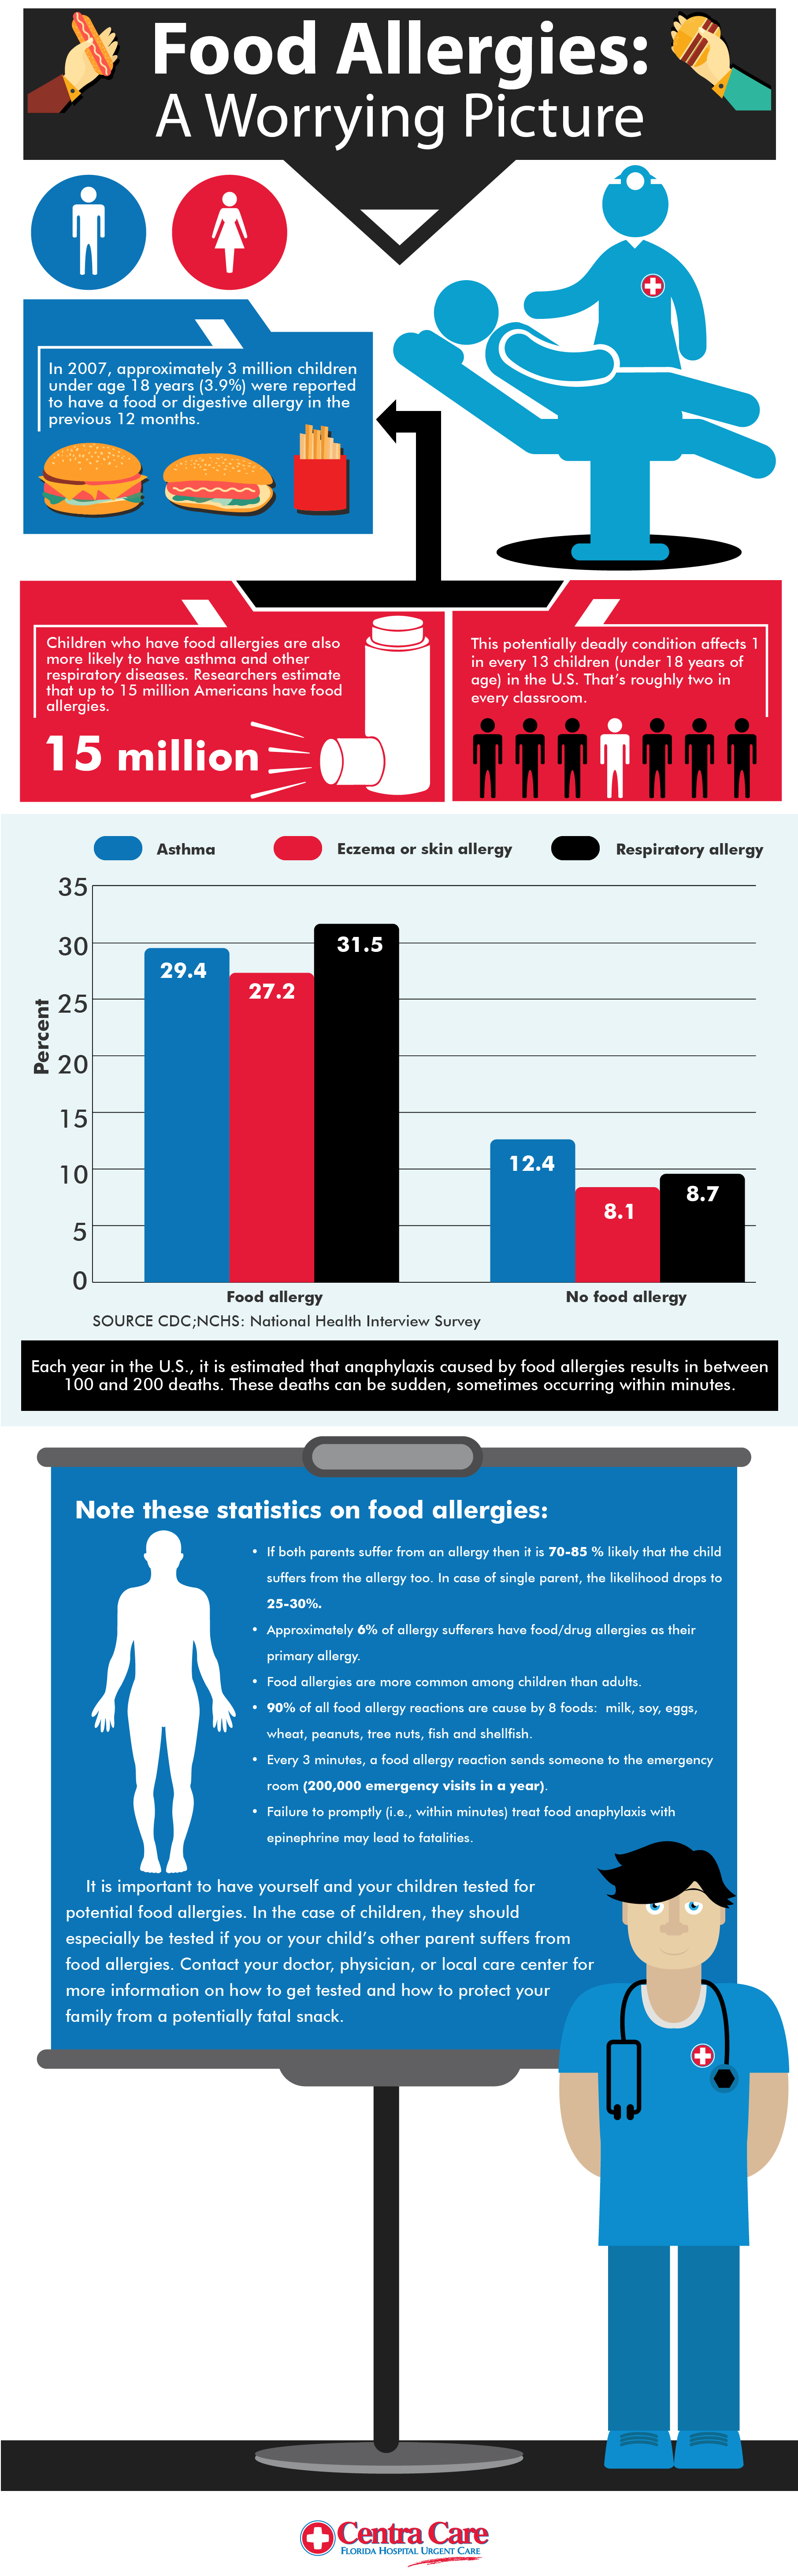 Food Allergies A Worrying Picture